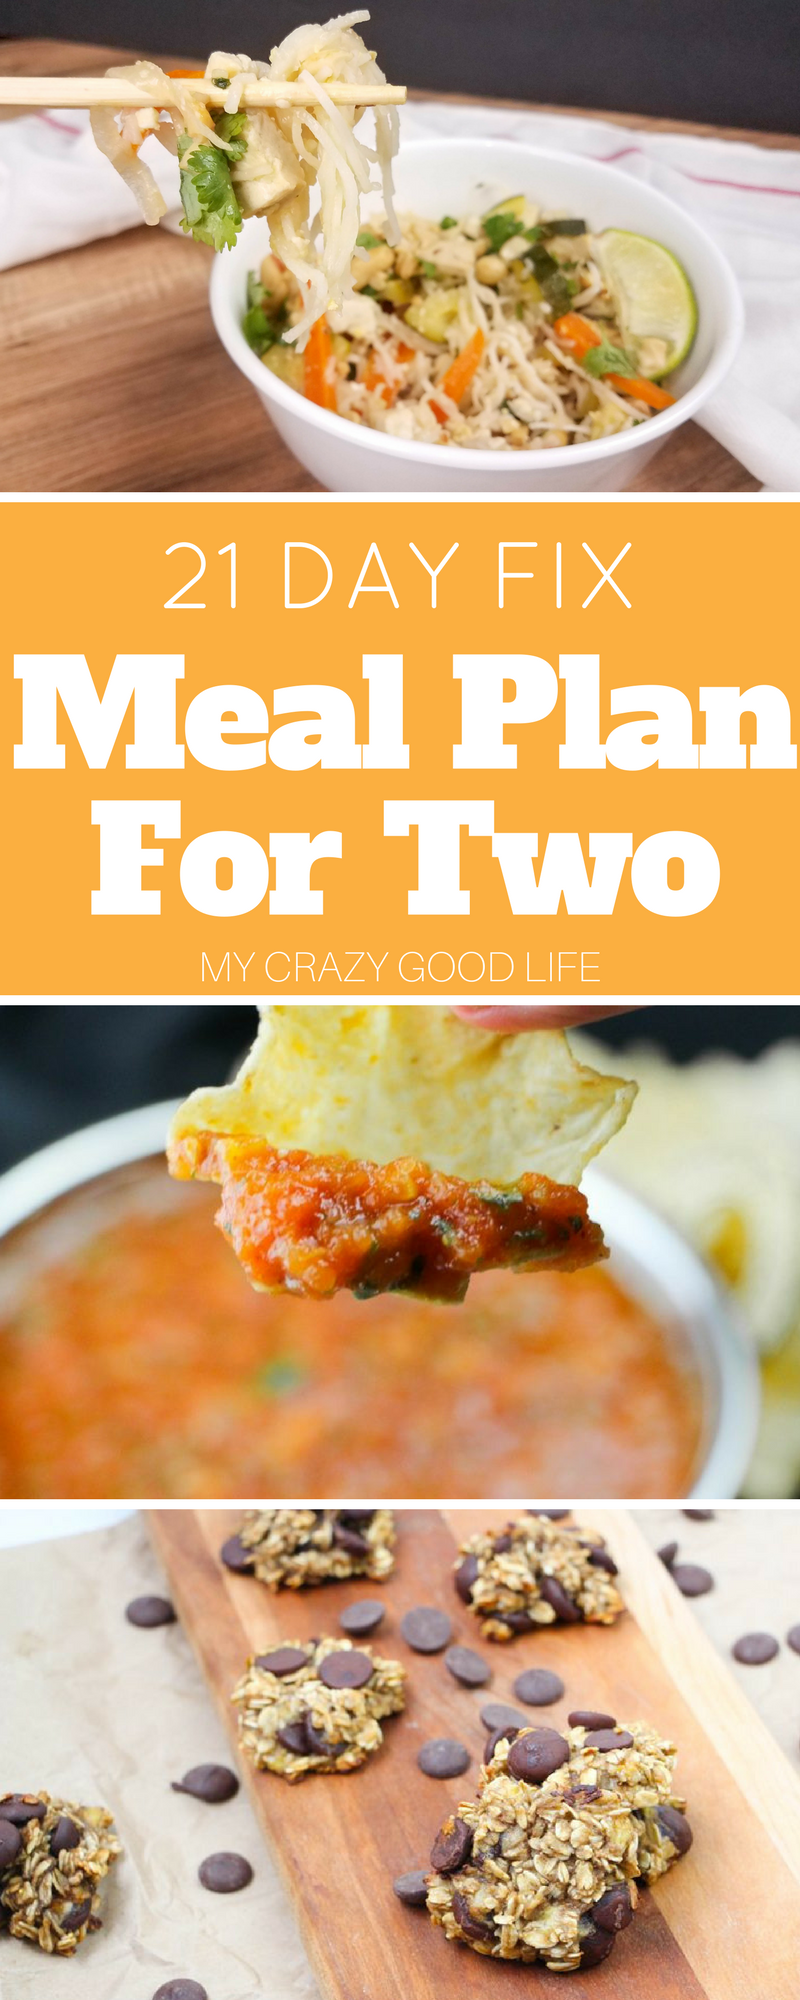 This 21 Day Fix meal plan for two is perfect if you are cooking for yourself or just for two. No stress over cooking for one and having tons of leftovers.